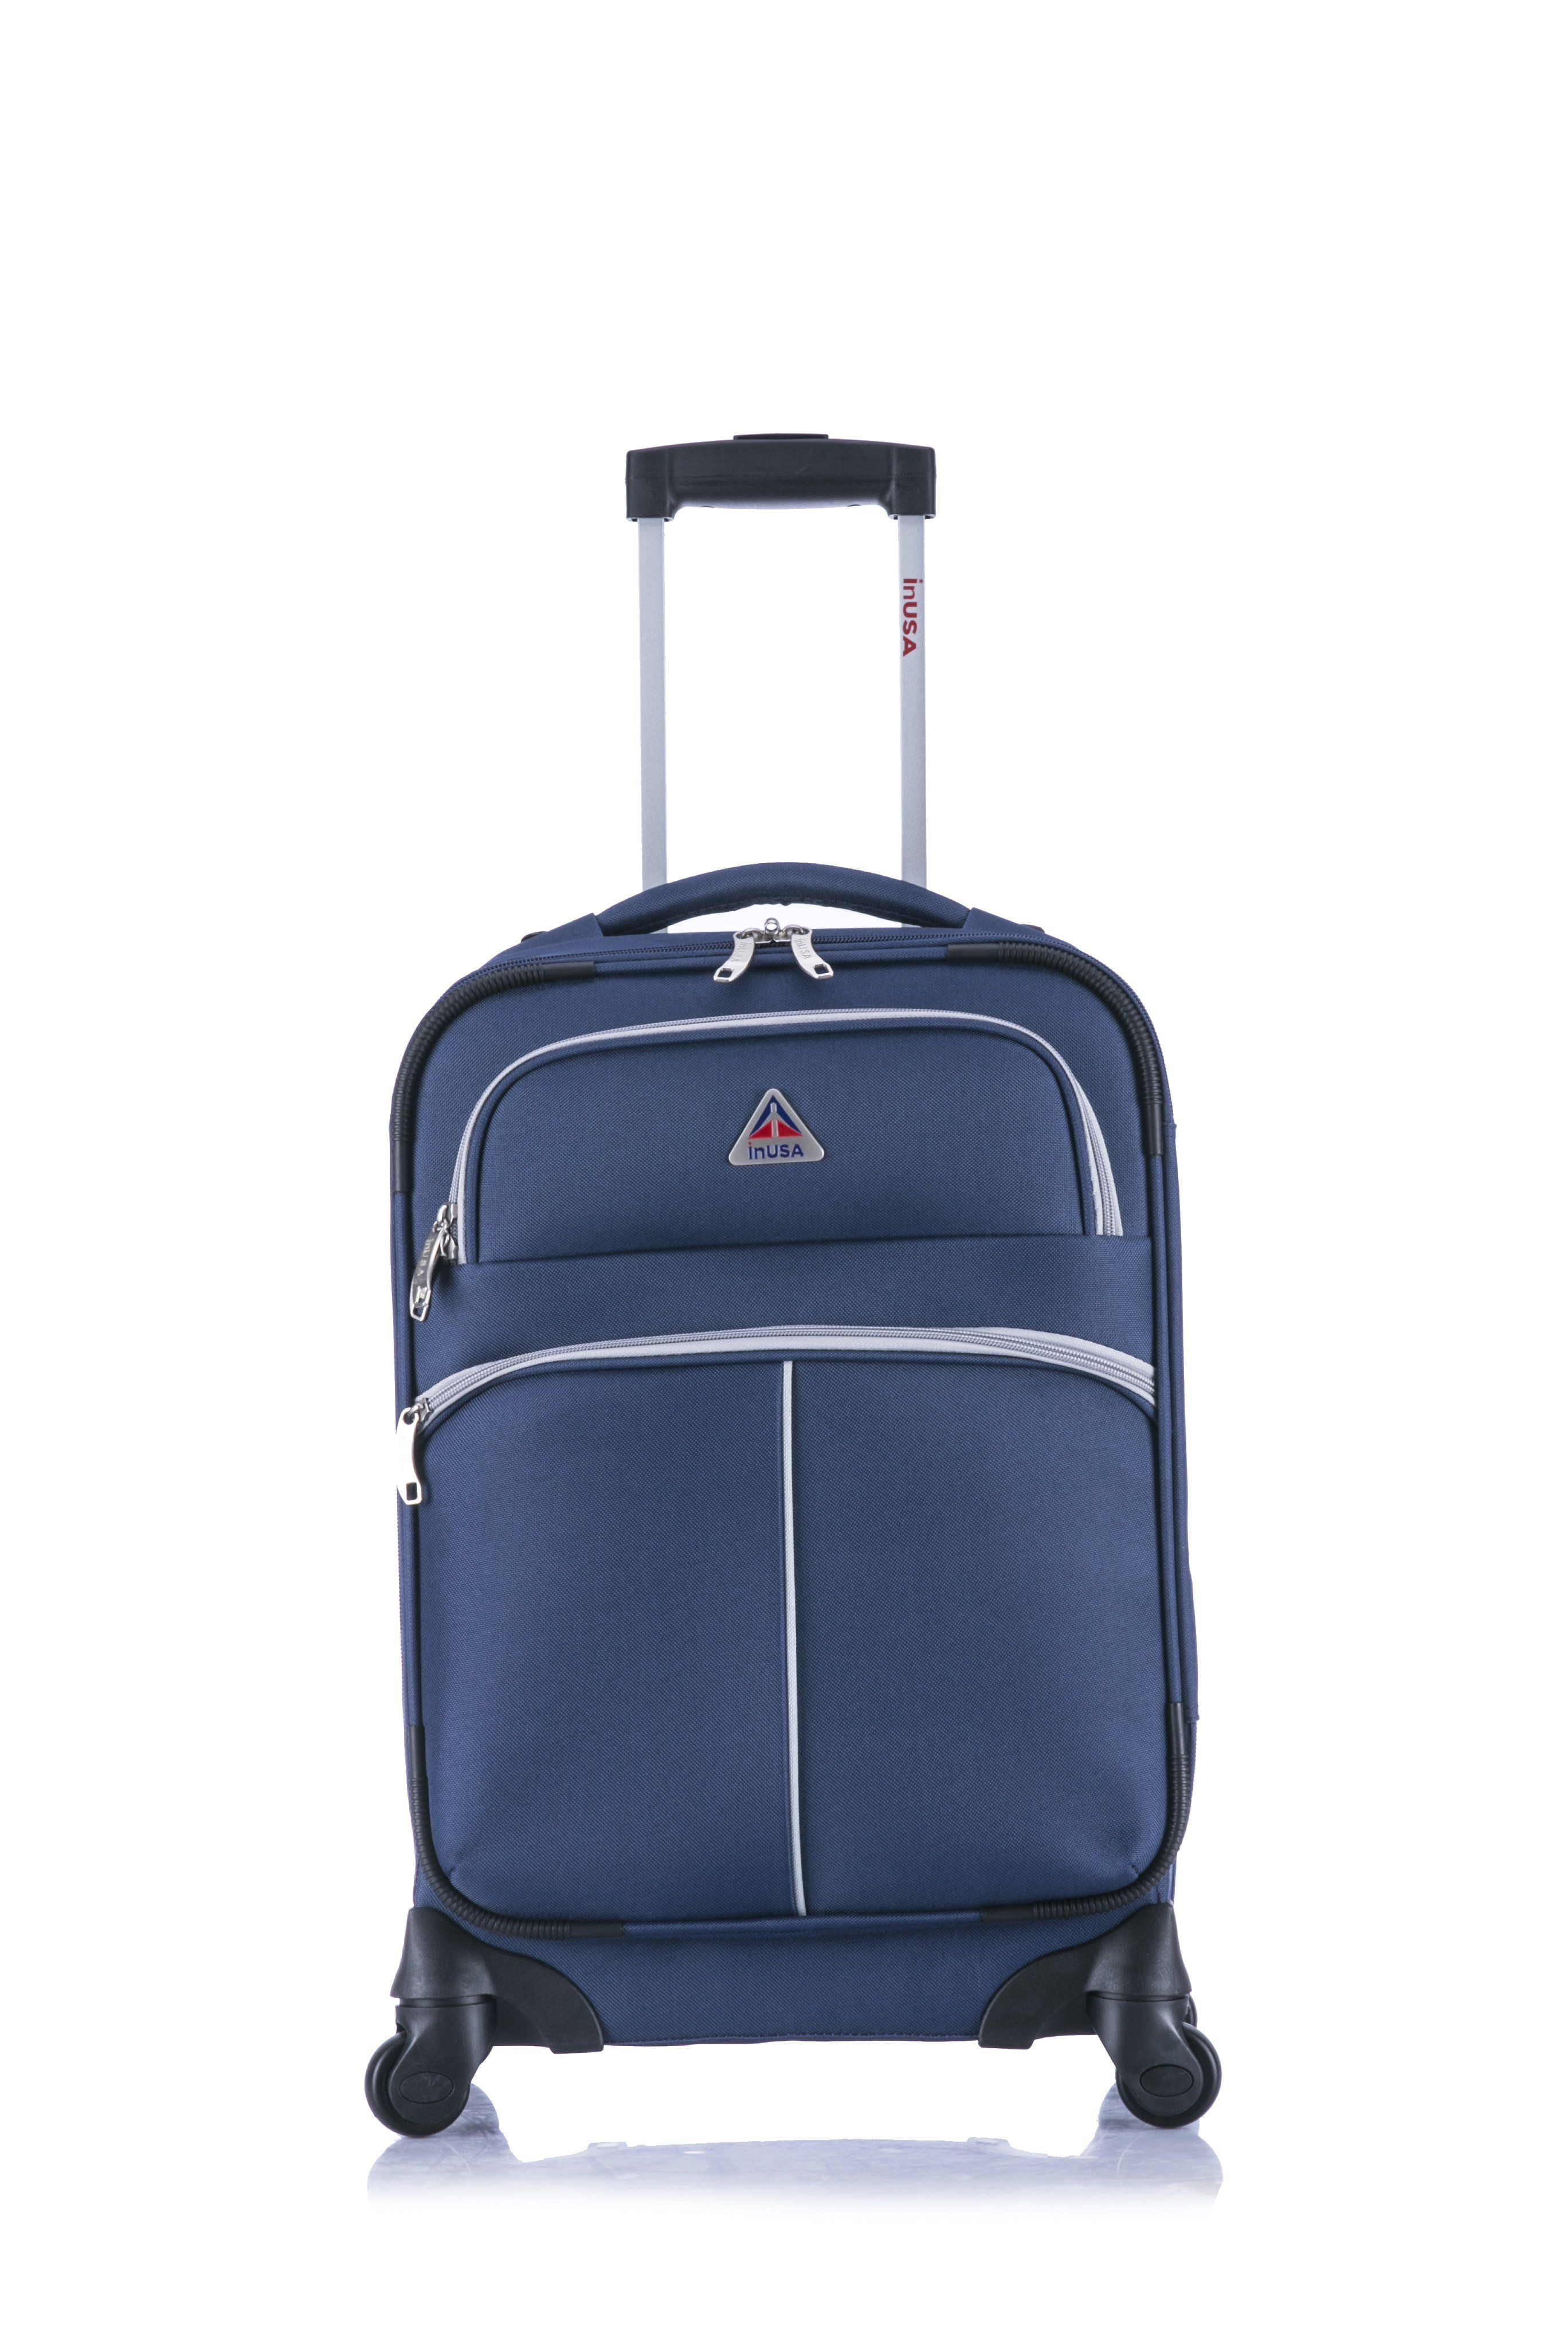 3960e7bbd Roller-Fi Carry On 20'' | Luggage | Carry on suitcase, Carry on ...